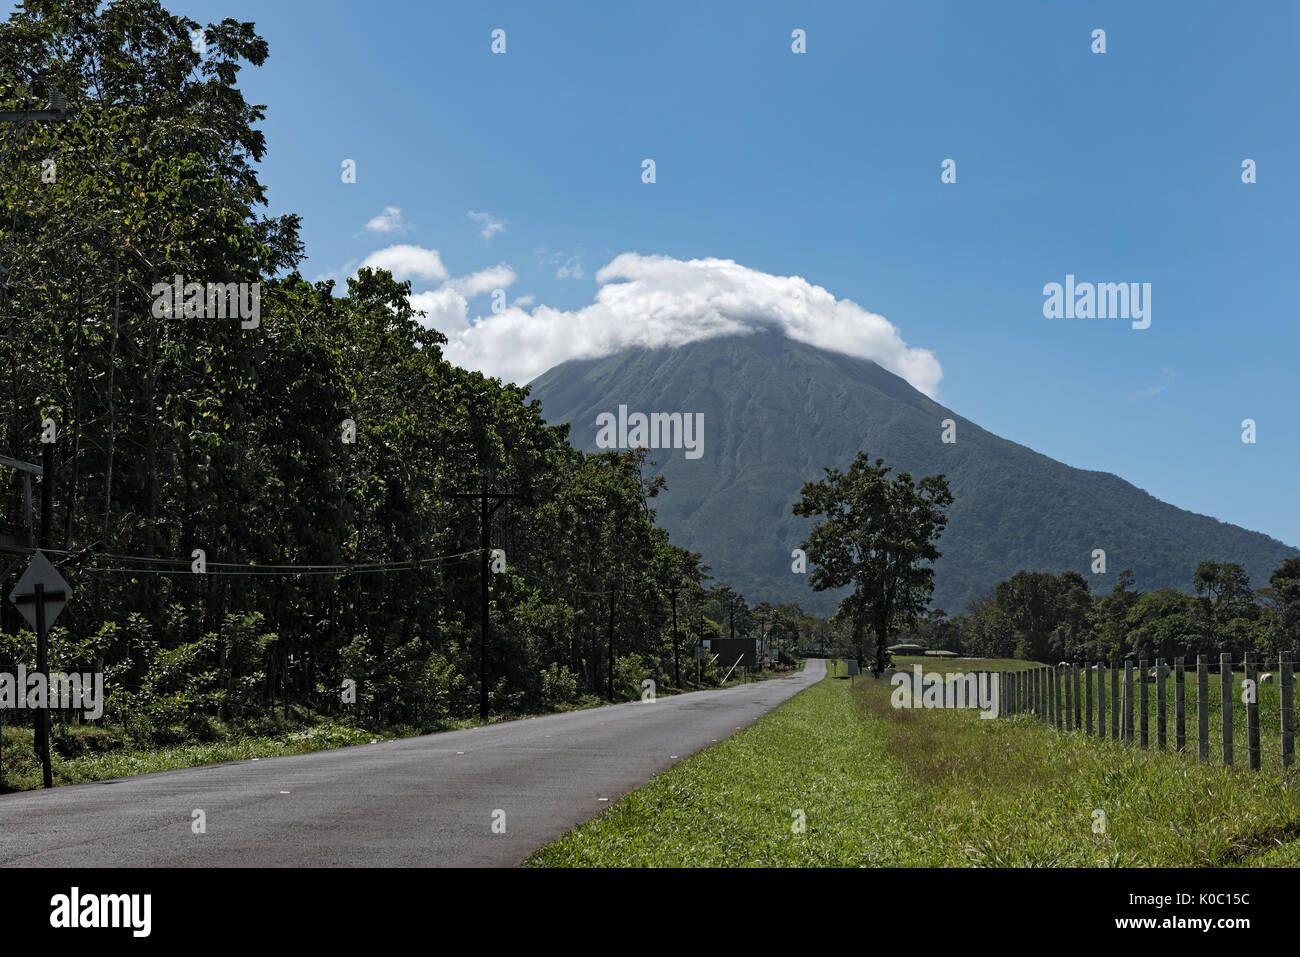 Le volcan Arenal au Costa Rica Photo Stock